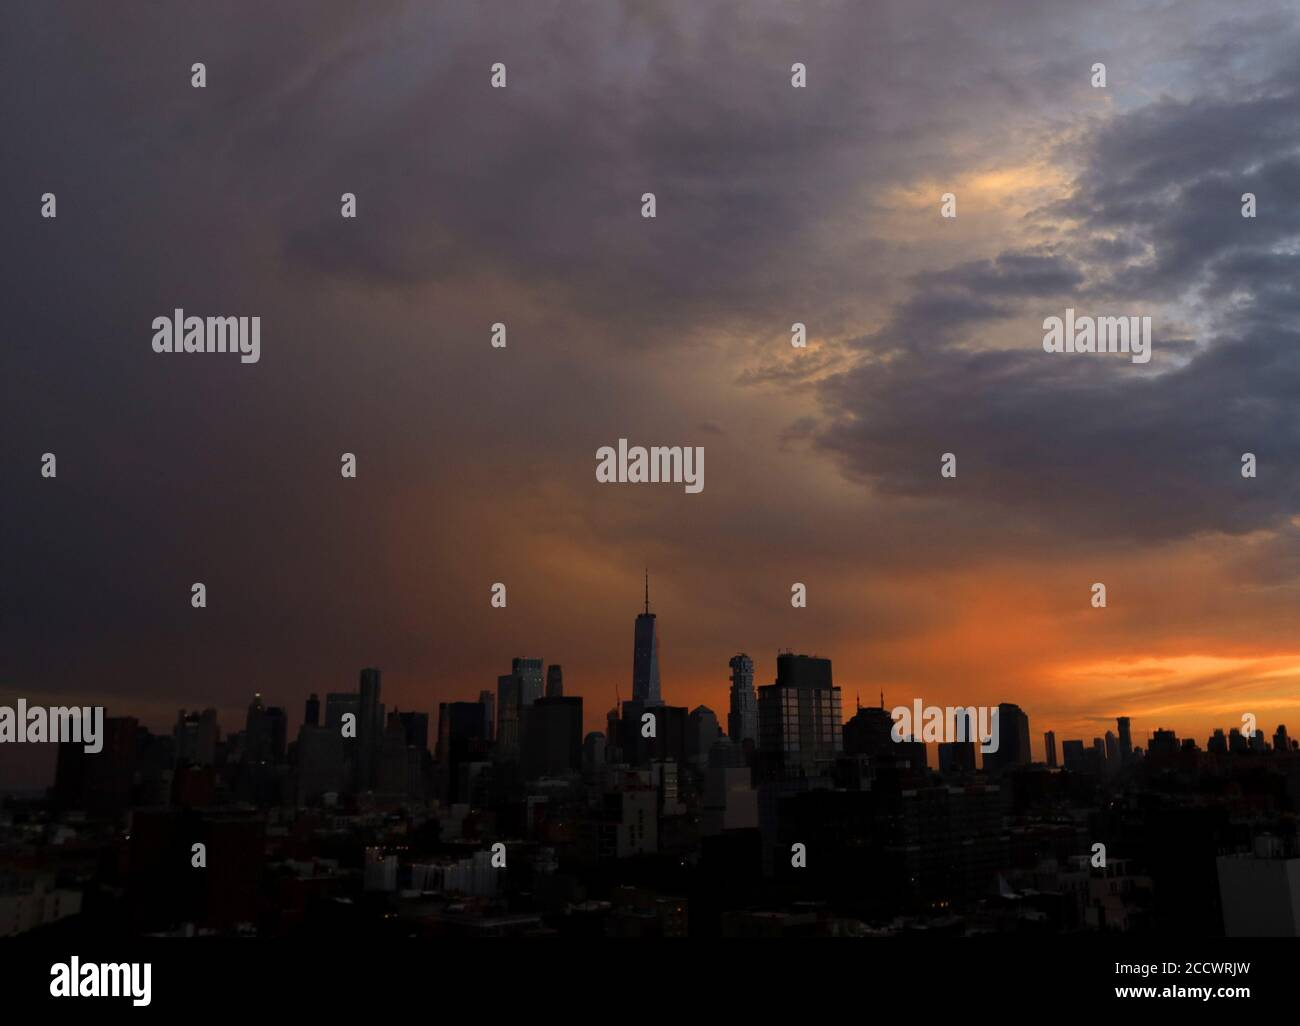 New York, United States. 24th Aug, 2020. The sun sets behind One World Trade Center and the Manhattan Skyline in New York City on Monday, August 24, 2020. Photo by John Angelillo/UPI Credit: UPI/Alamy Live News Stock Photo